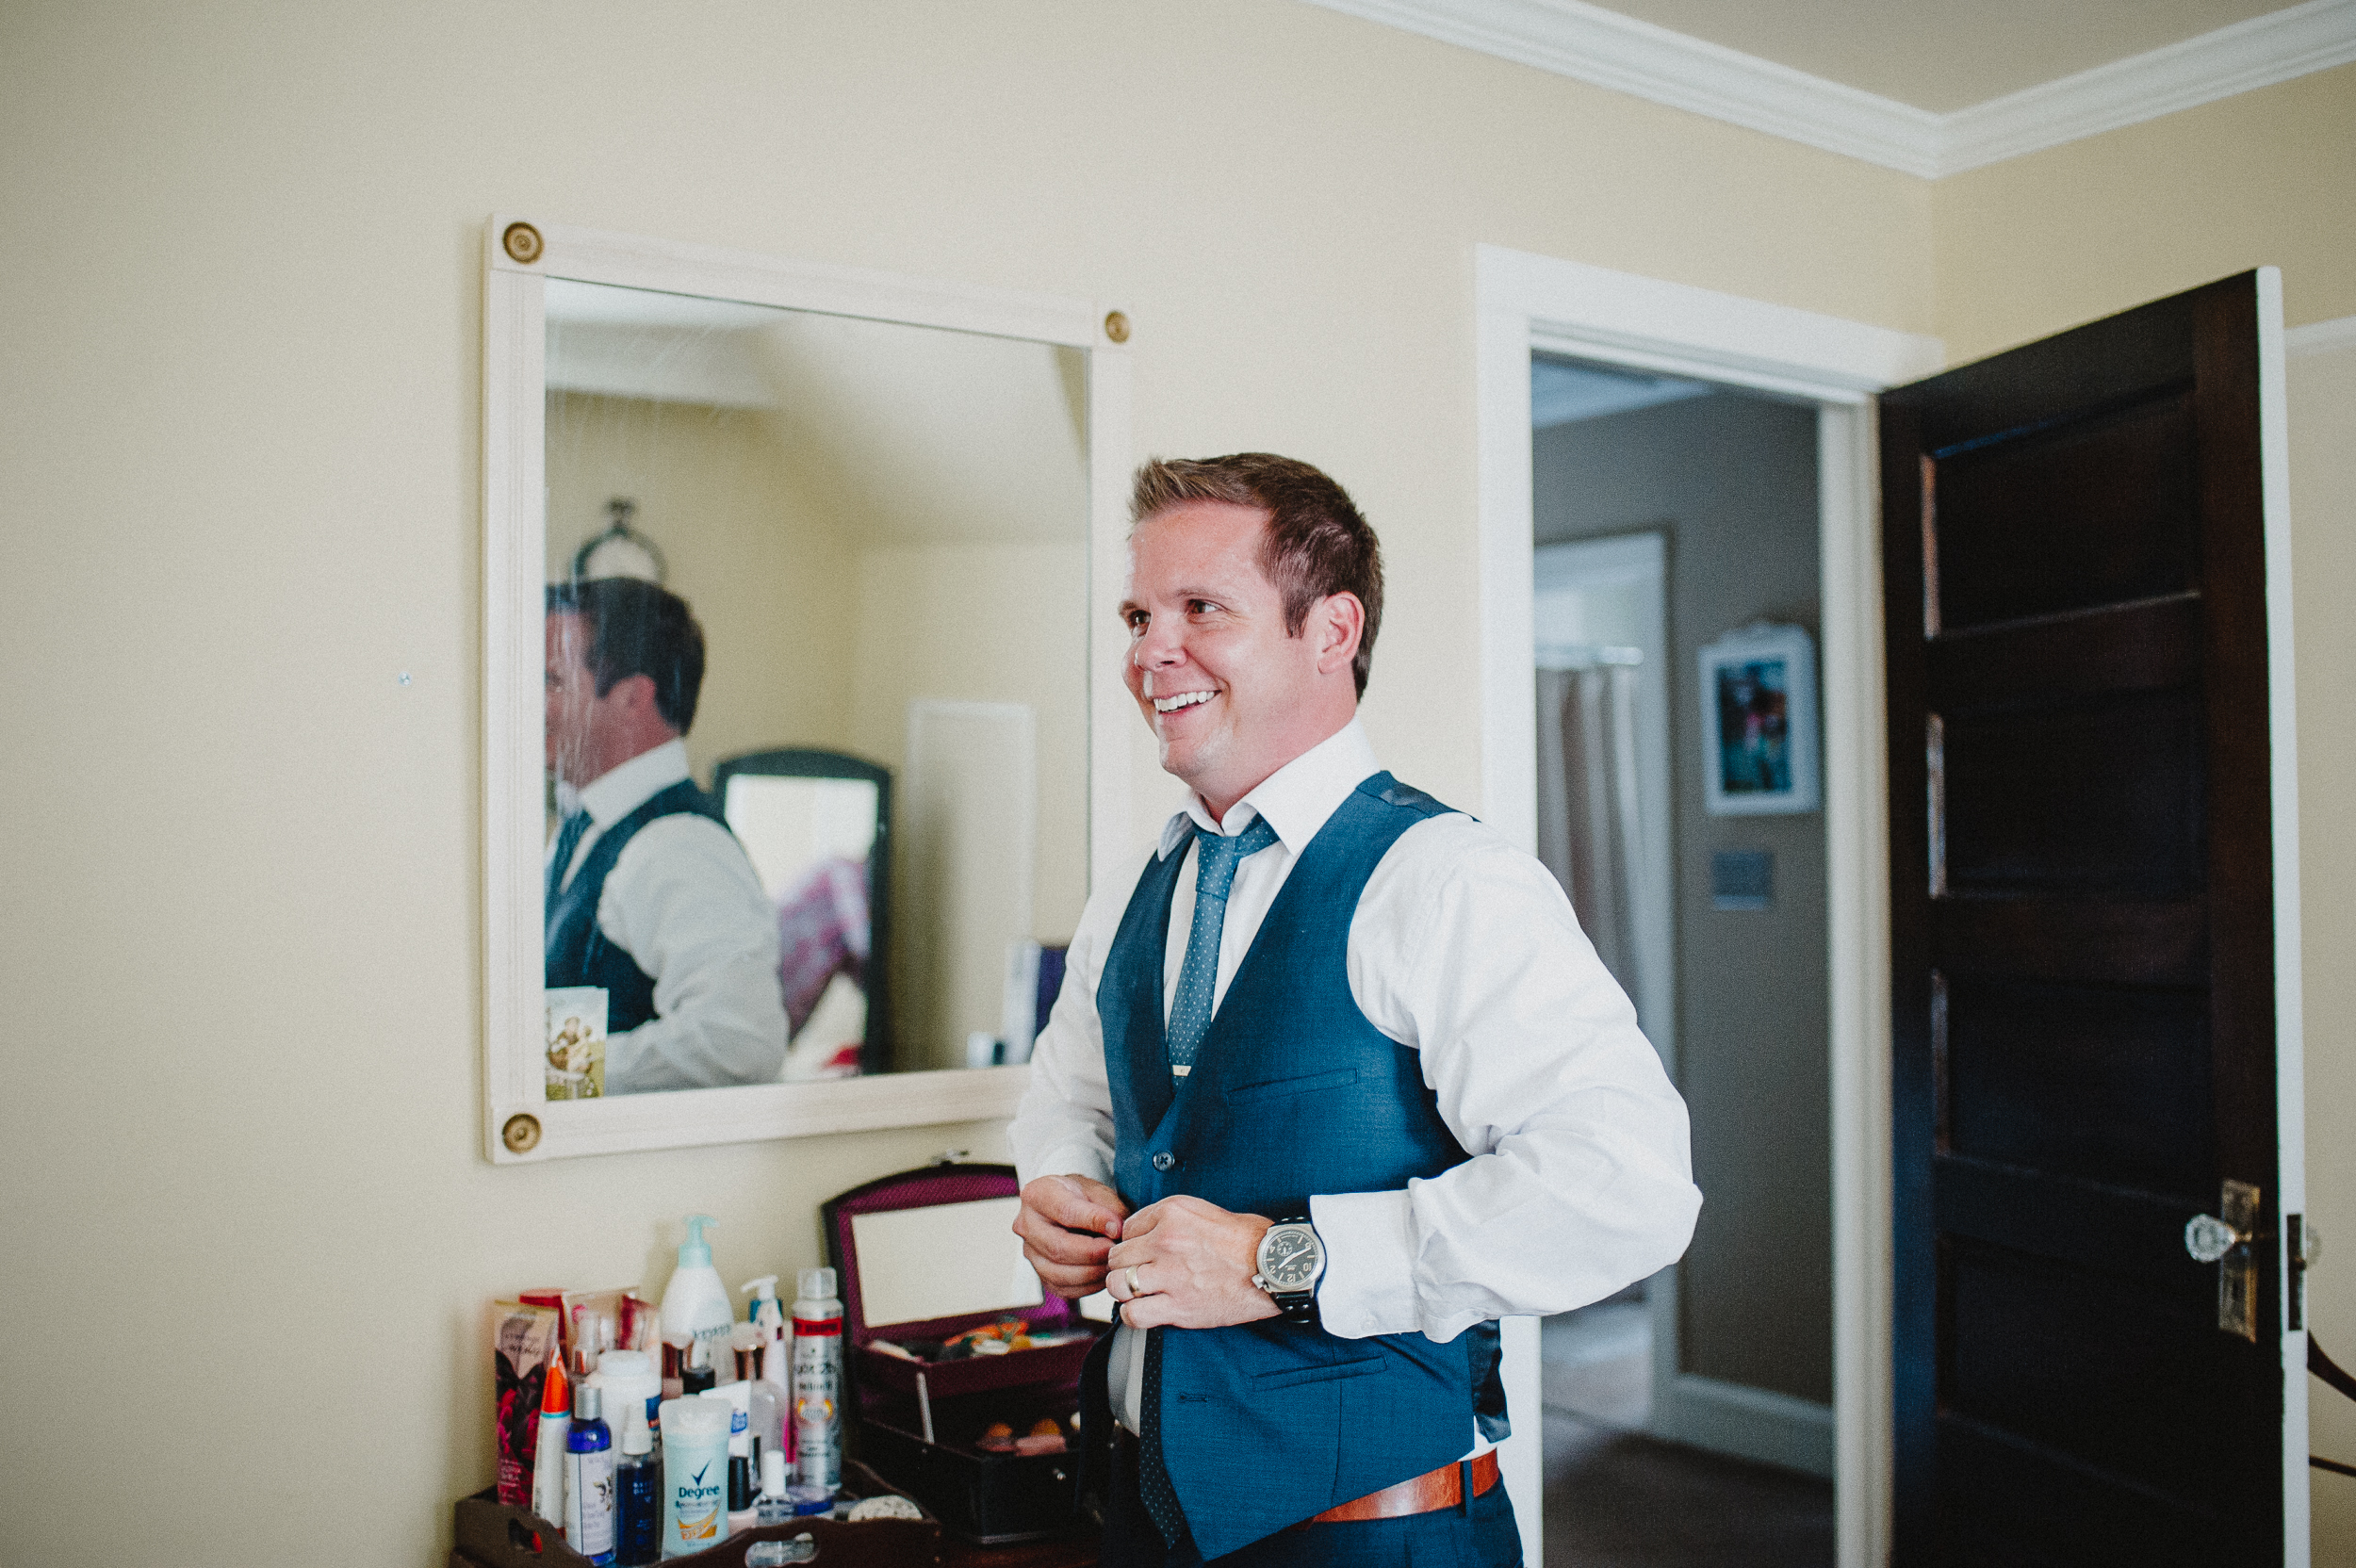 pat-robinson-photography-rockwood-carriage-house-wedding-photographer-9.jpg